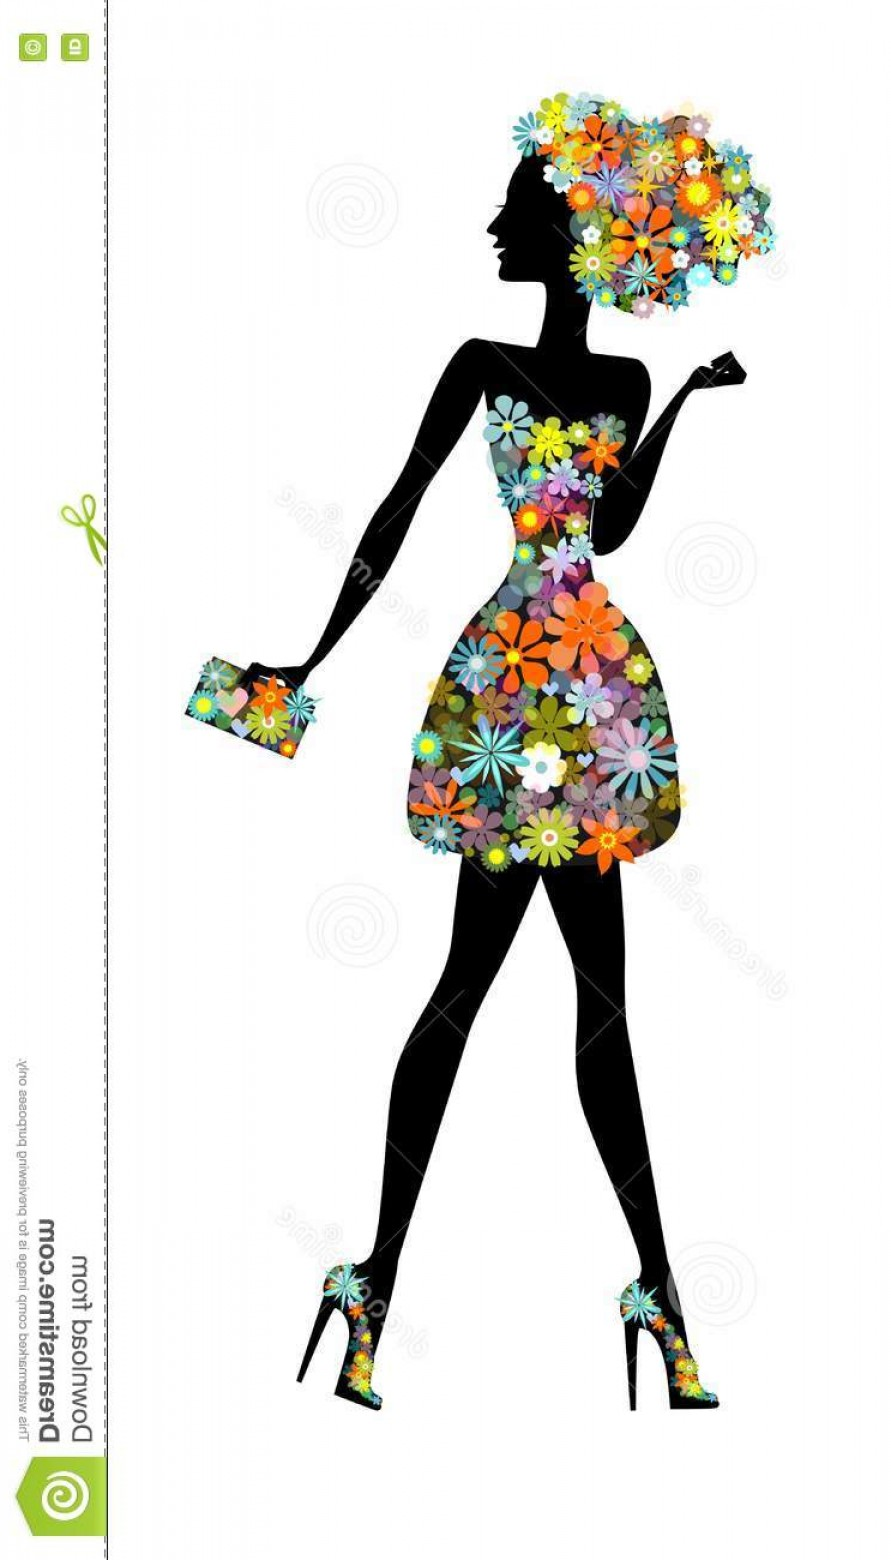 Vector Flower Girl Dresses: Stock Illustration Flower Girl Beautiful Woman Perfume Vector Illustration Silhouette Cute Young Flowers Full Life Image